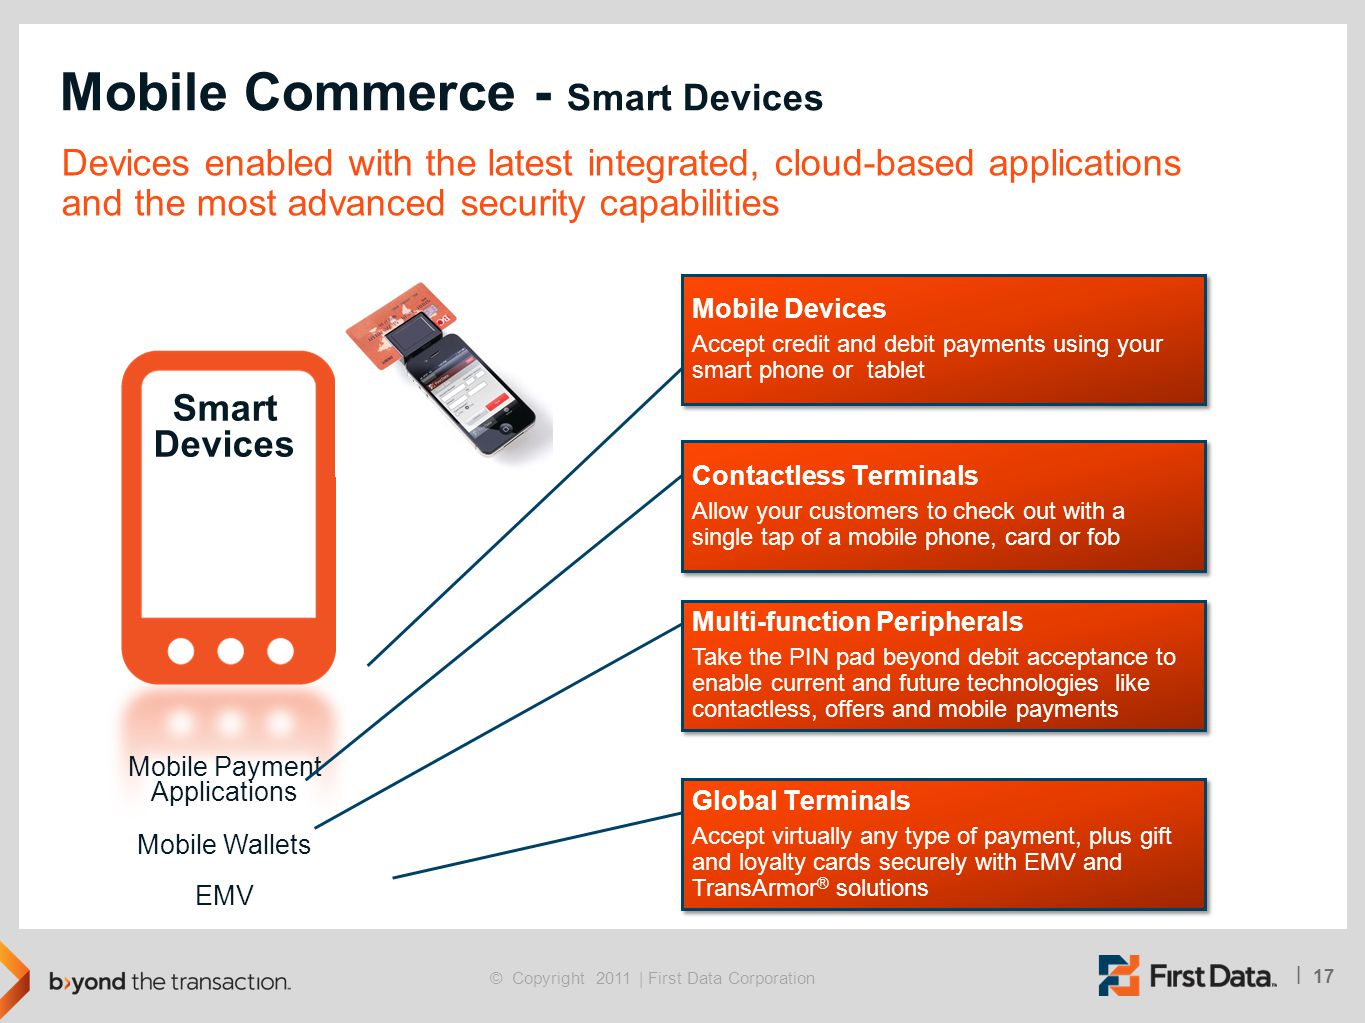 17 | © Copyright 2011 | First Data Corporation Mobile Commerce - Smart Devices Devices enabled with the latest integrated, cloud-based applications an